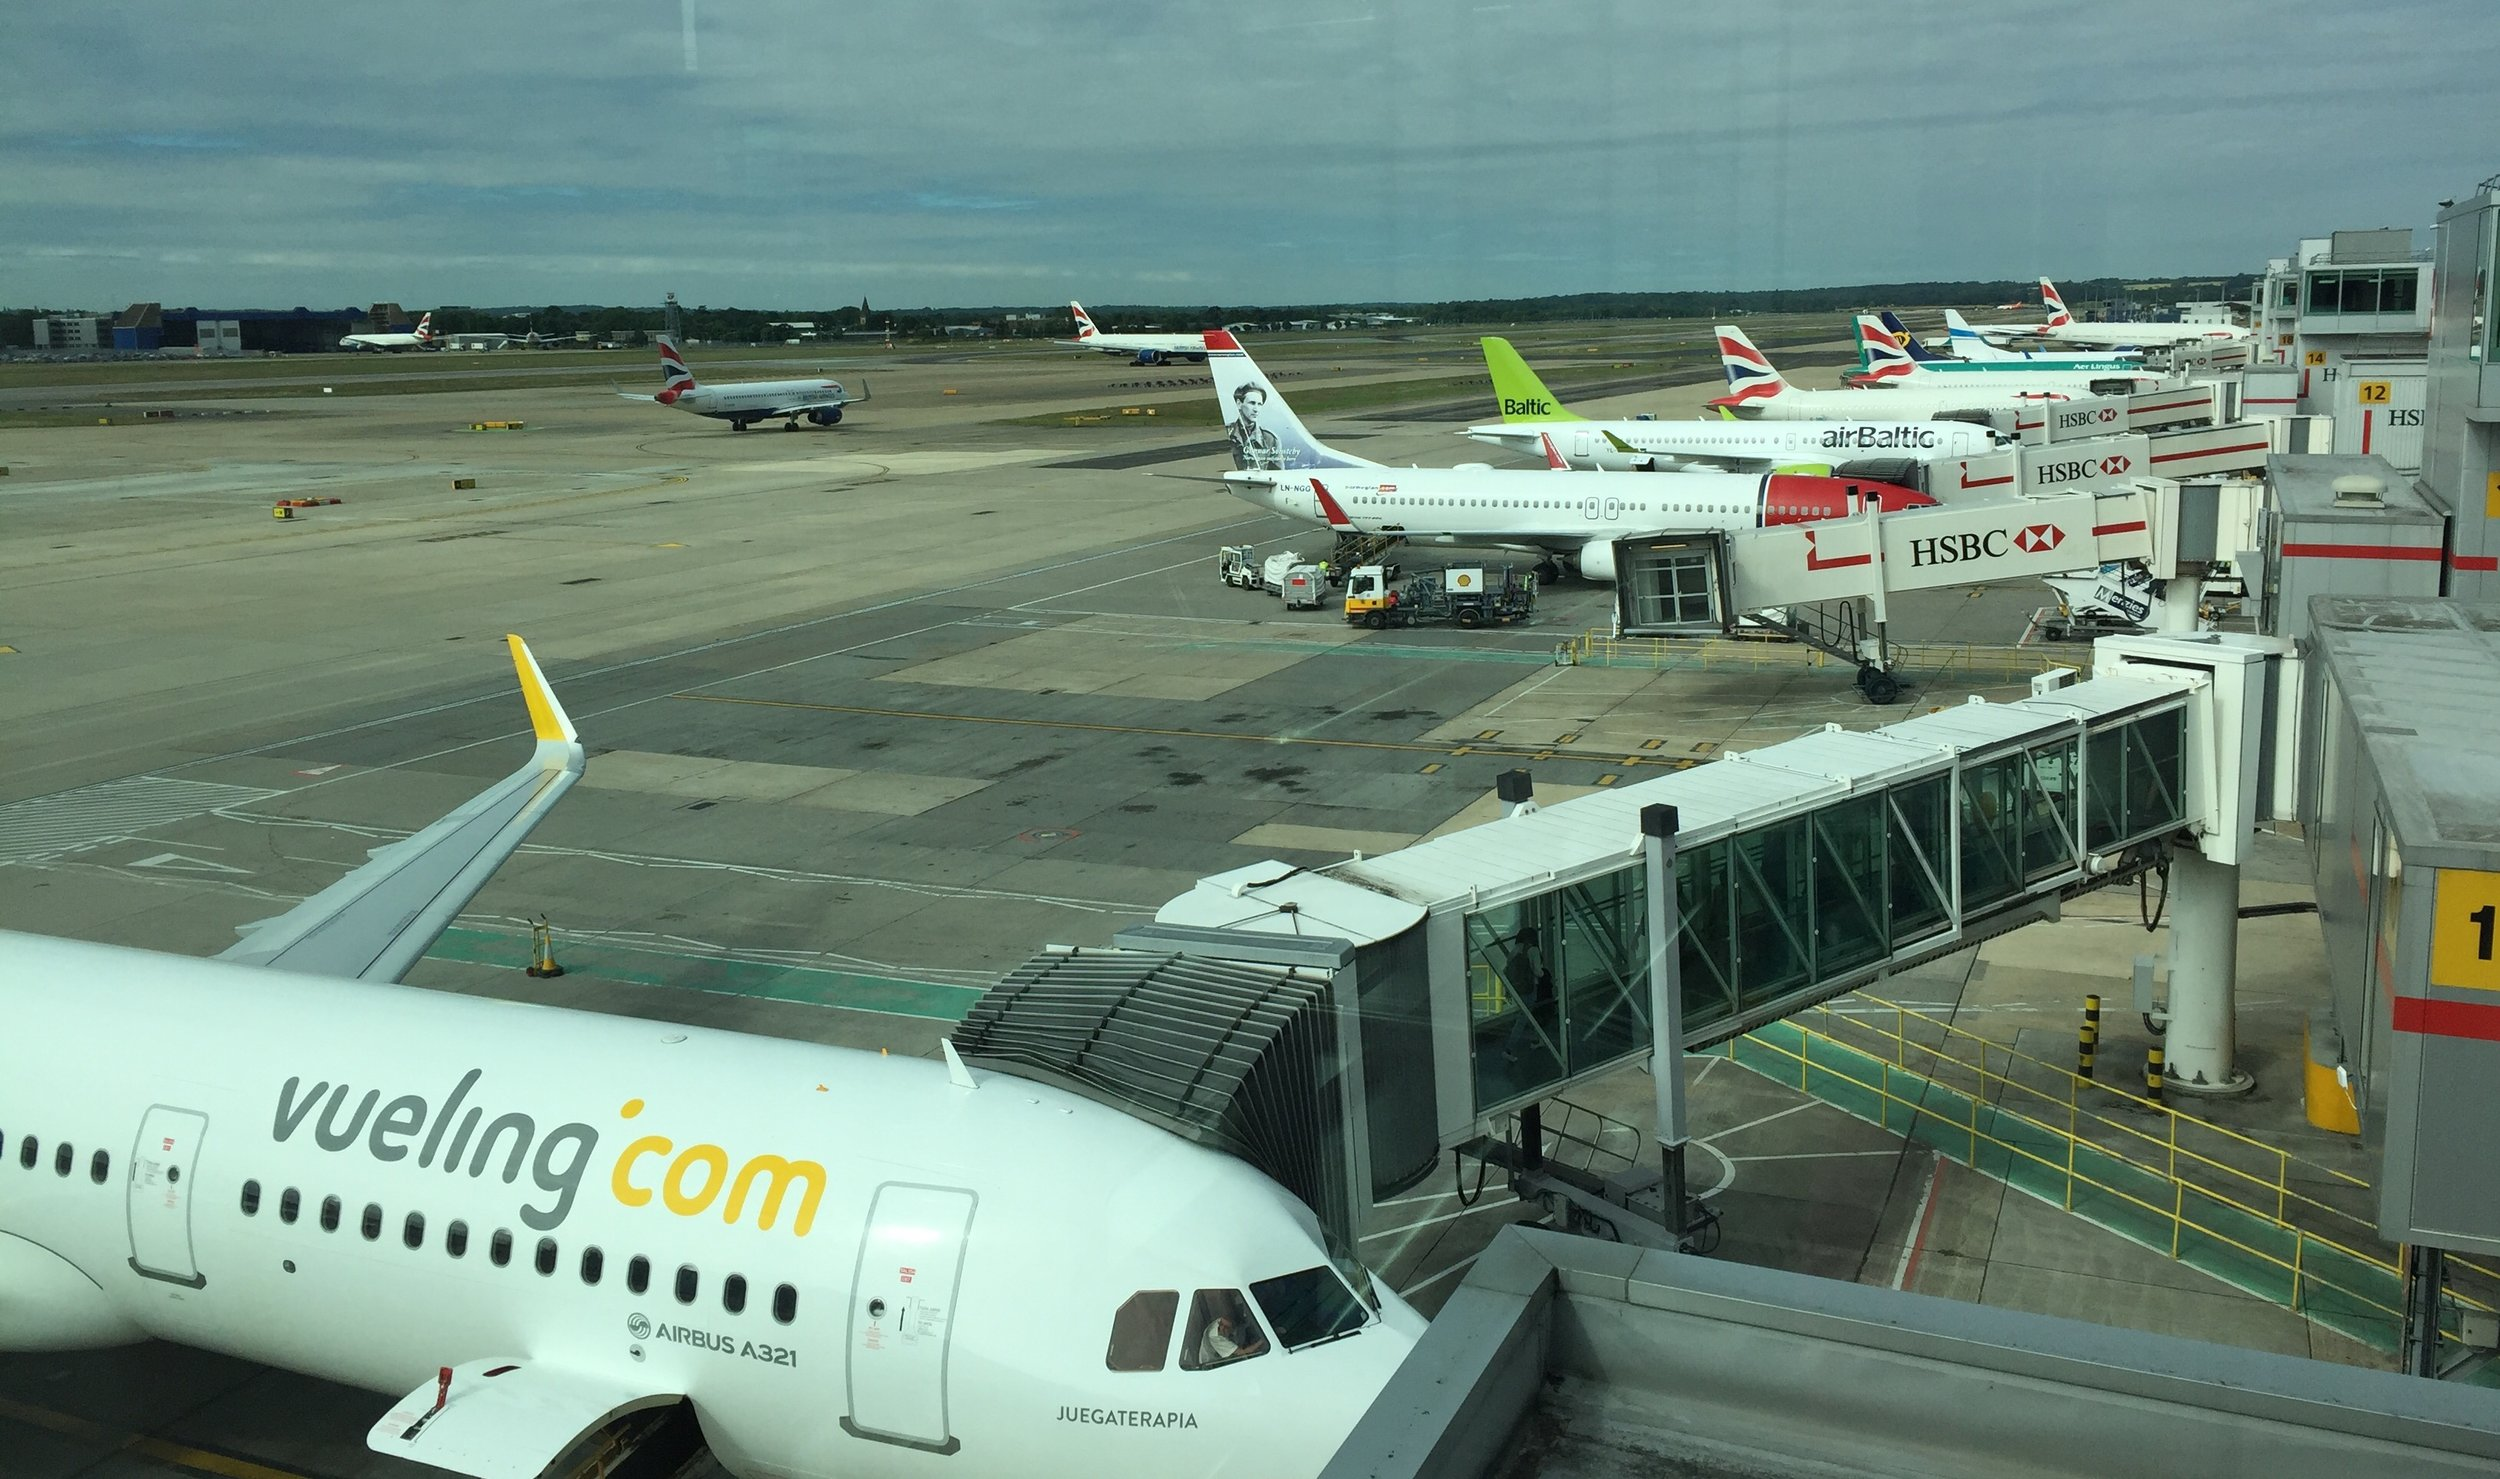 A colourful display of tails greeted our arrival to Gatwick airport. The A321 that flew us from Barcelona, in the foreground